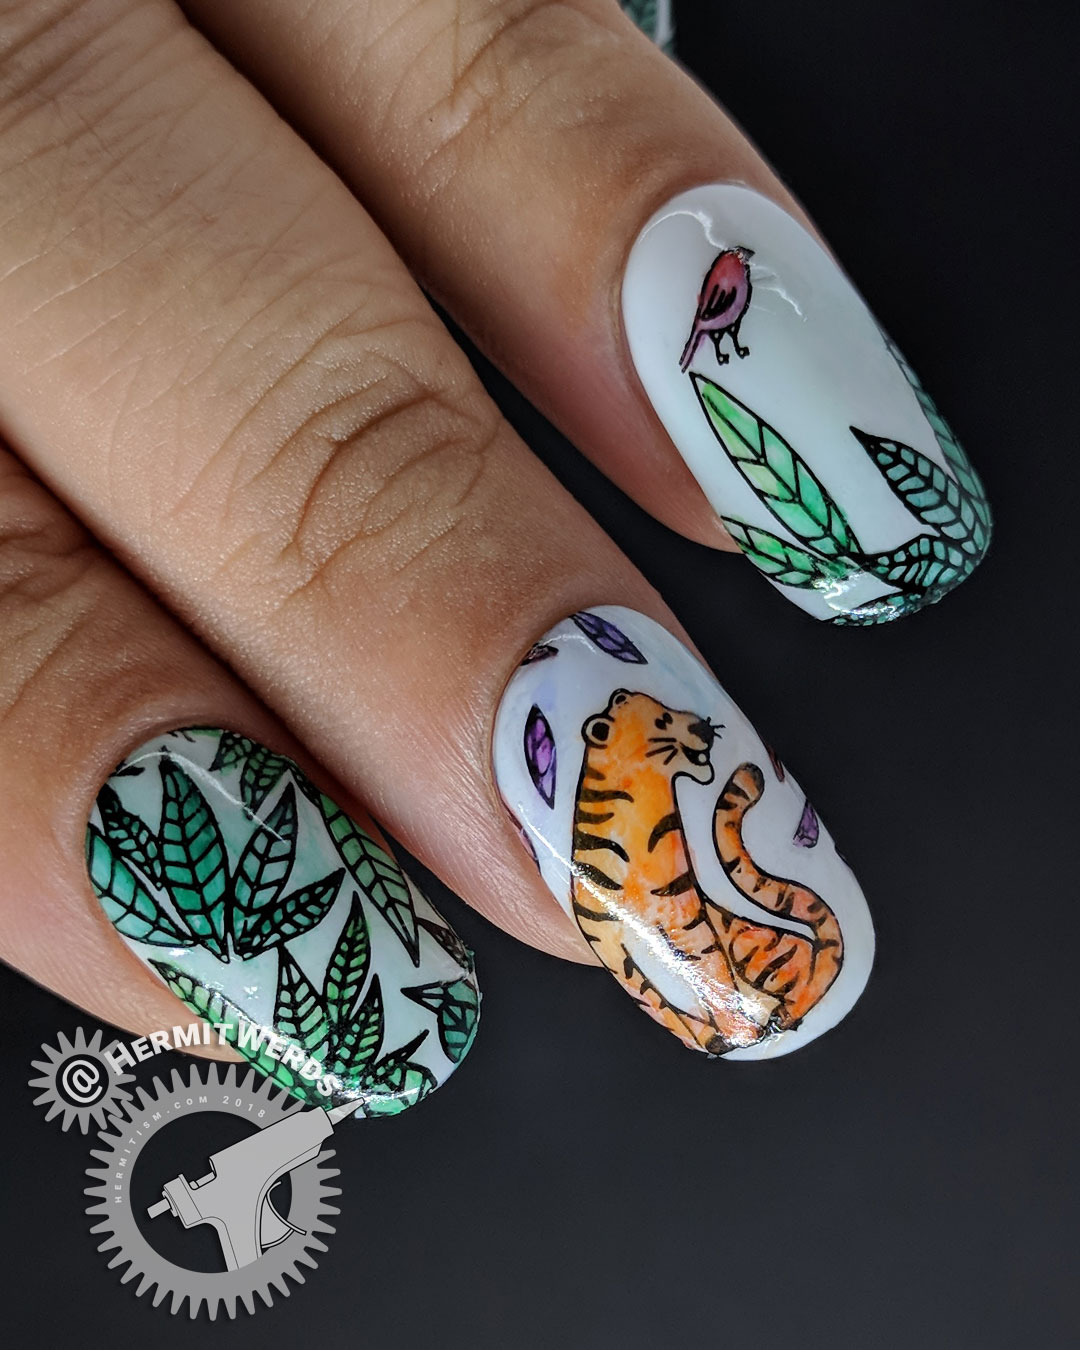 Tiger Munchies - Hermit Werds - nail art of watercolor tiger gazing hungrily at a little bird in the jungle